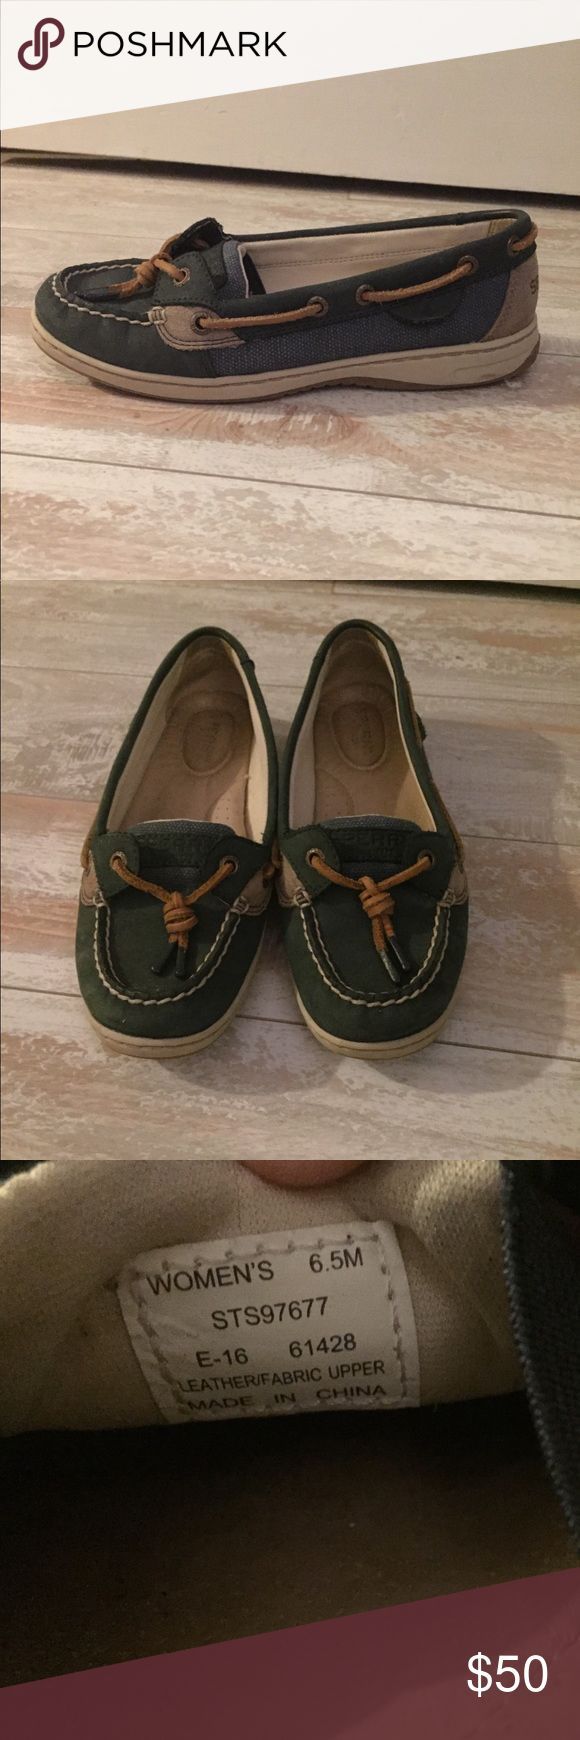 Sperry Angelfish boat shoe Blue Angelfish boat shoe. Good condition Sperry Shoes